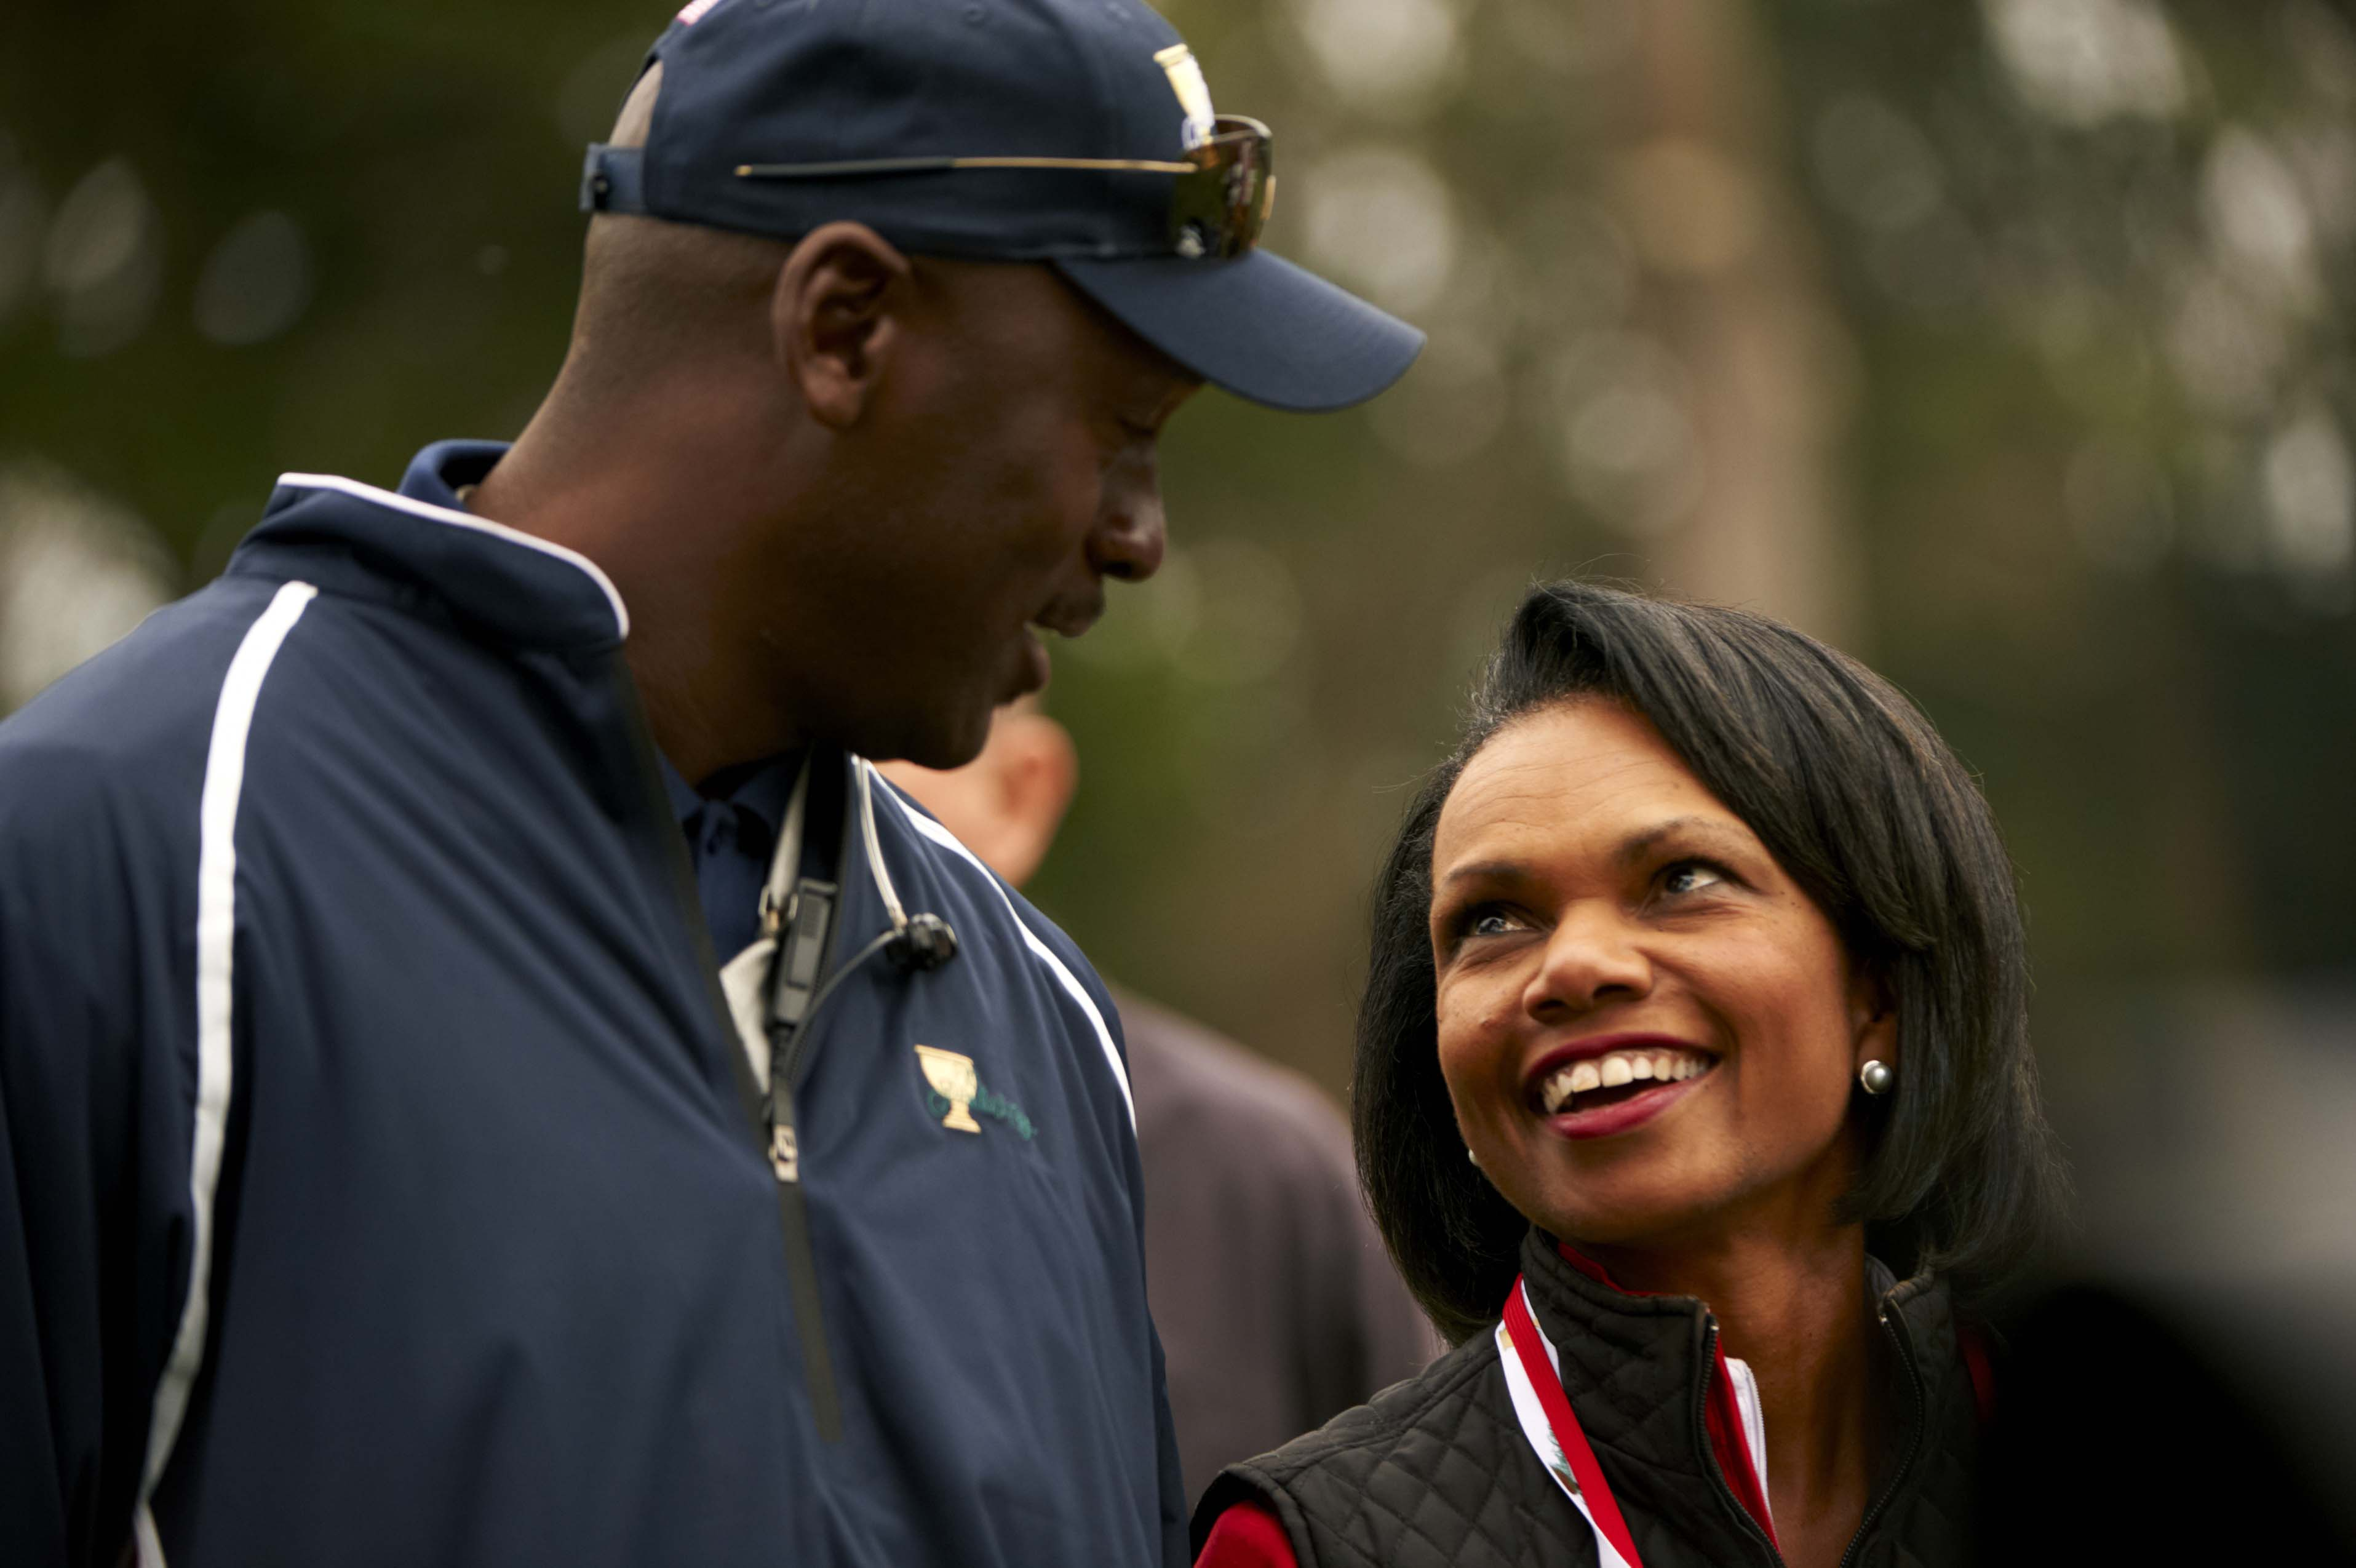 Michael Jordan and Condoleezza Rice